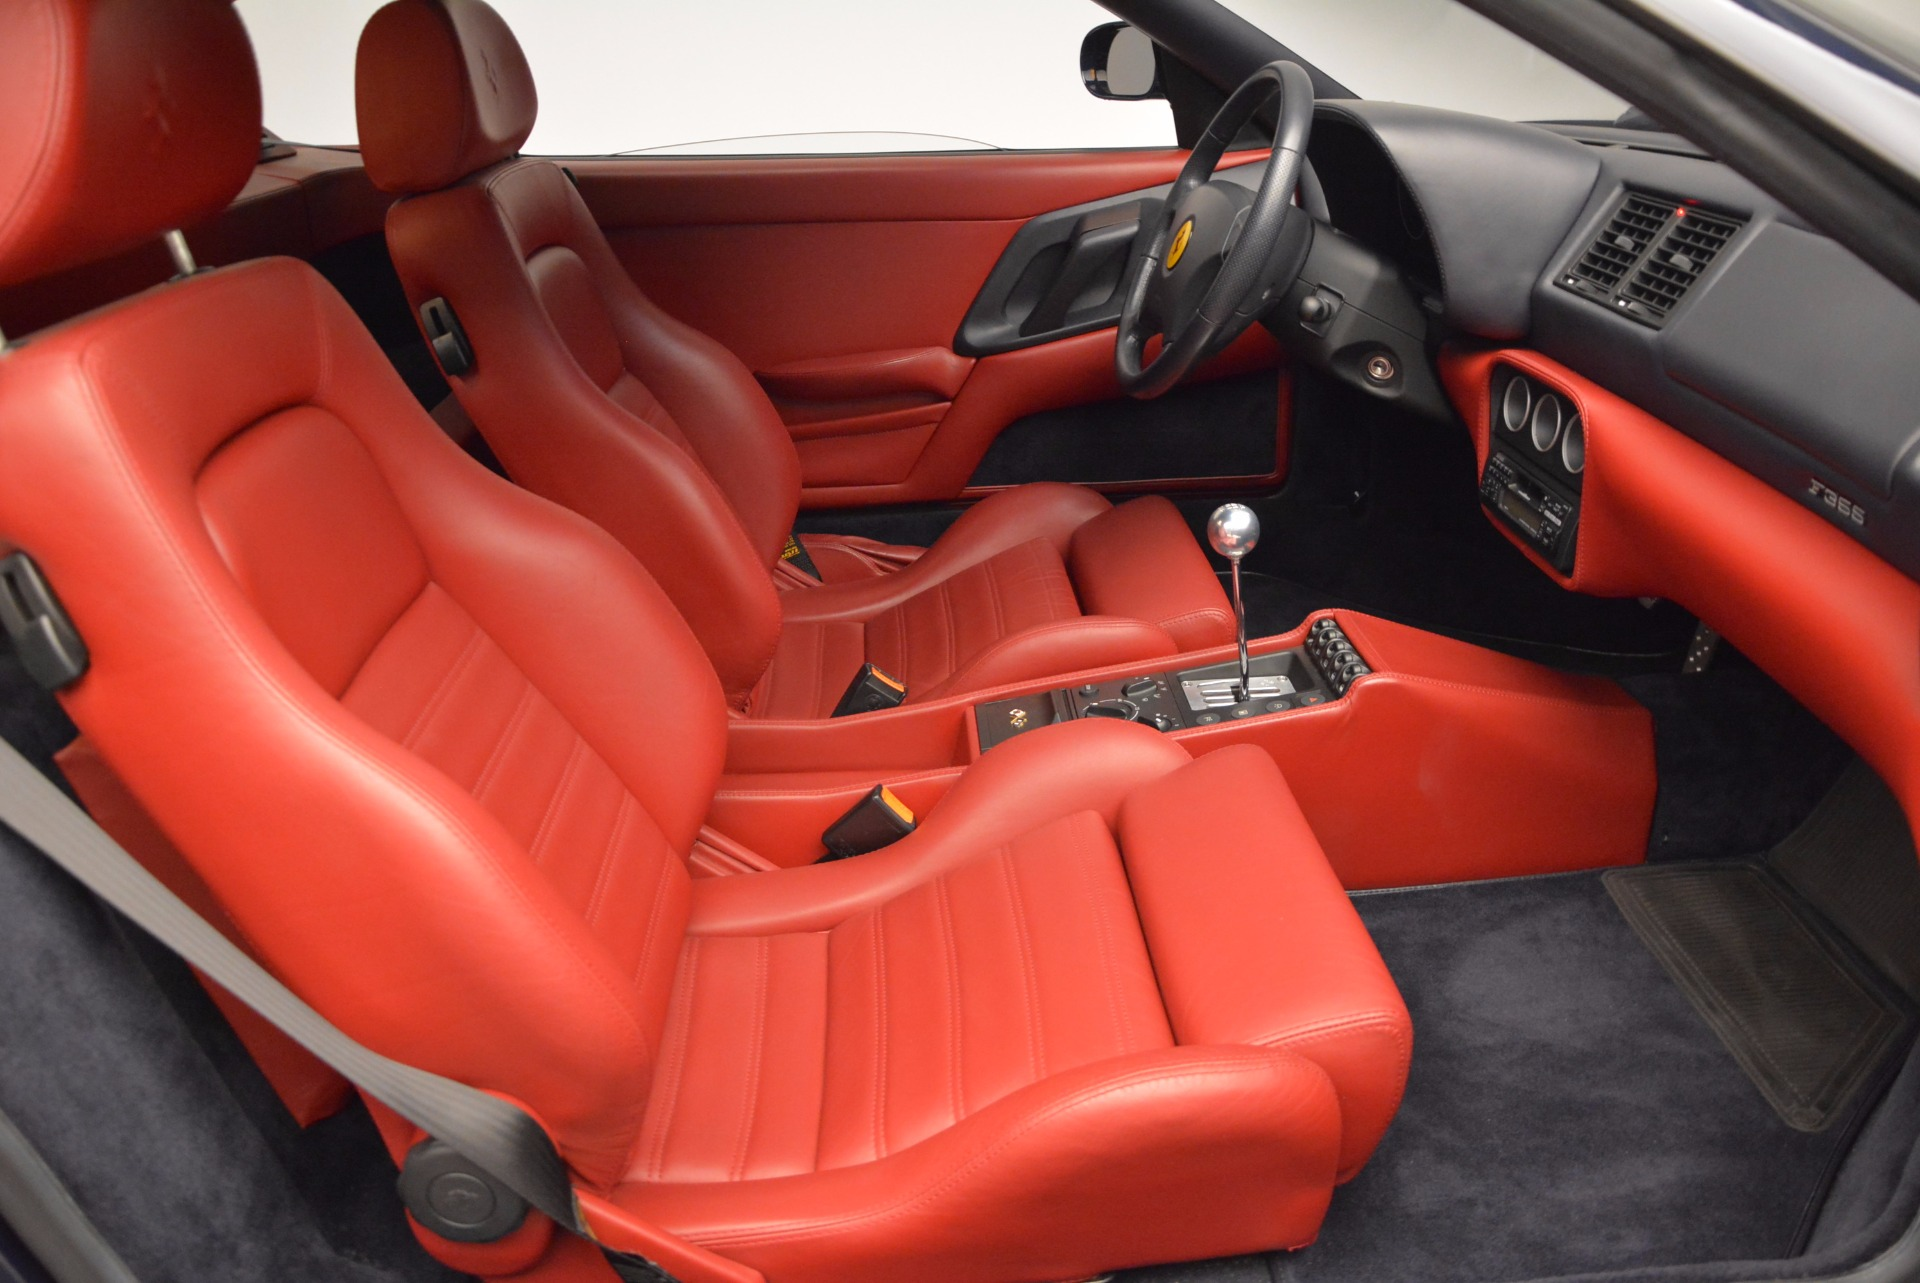 Used 1999 Ferrari 355 Berlinetta For Sale In Westport, CT 855_p19